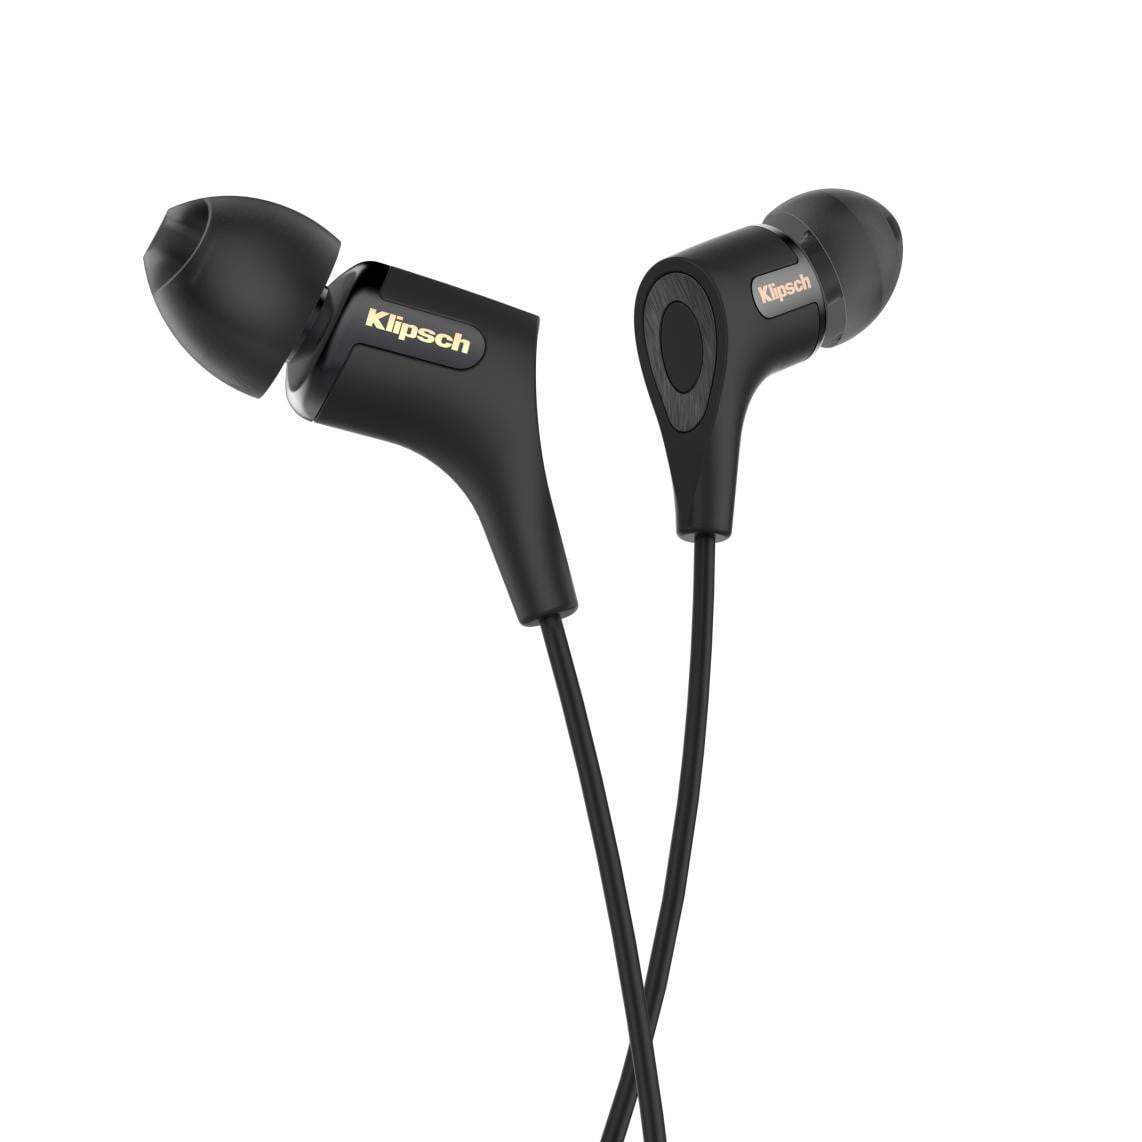 Klipsch R6 II IN-EAR HEADPHONES (Black or White) - Parker Gwen